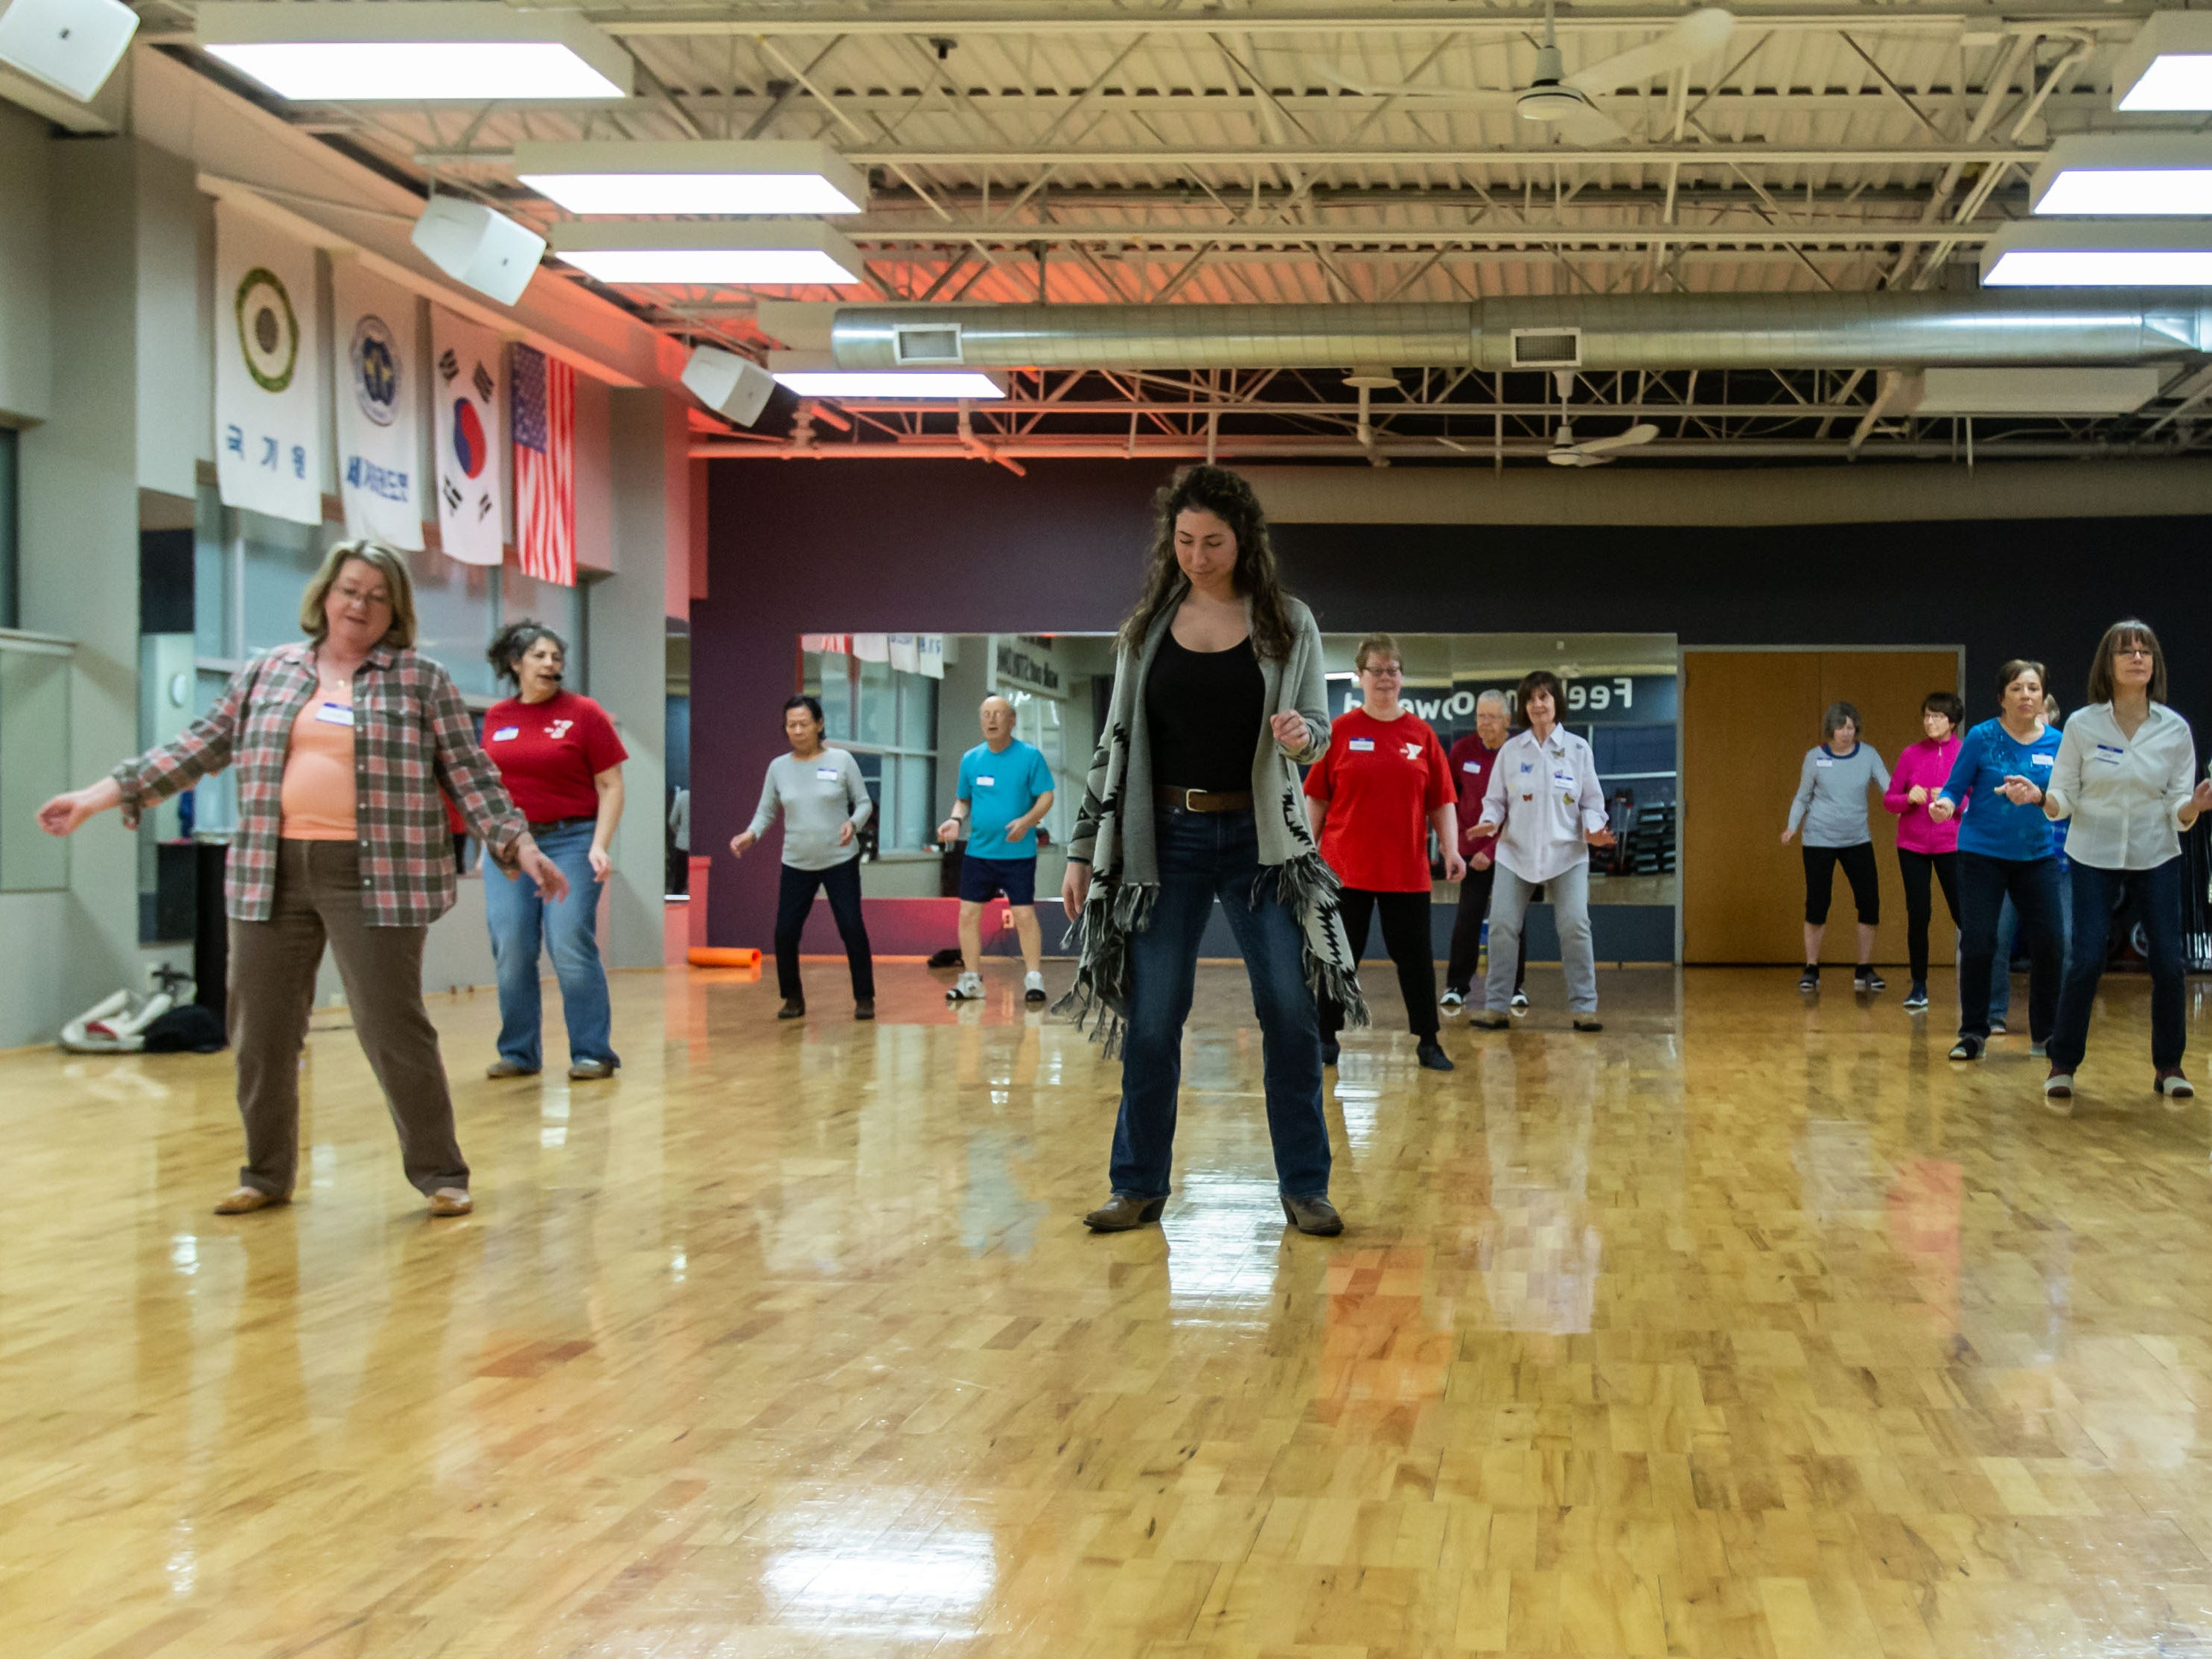 Visitors enjoy line dancing during the Hometown Hoedown NEA Big-Read Kickoff Event at the Tri County YMCA in Menomonee Falls on Saturday, Feb. 23, 2019. The event featured live music, food, games, and western themed activities for the whole family.